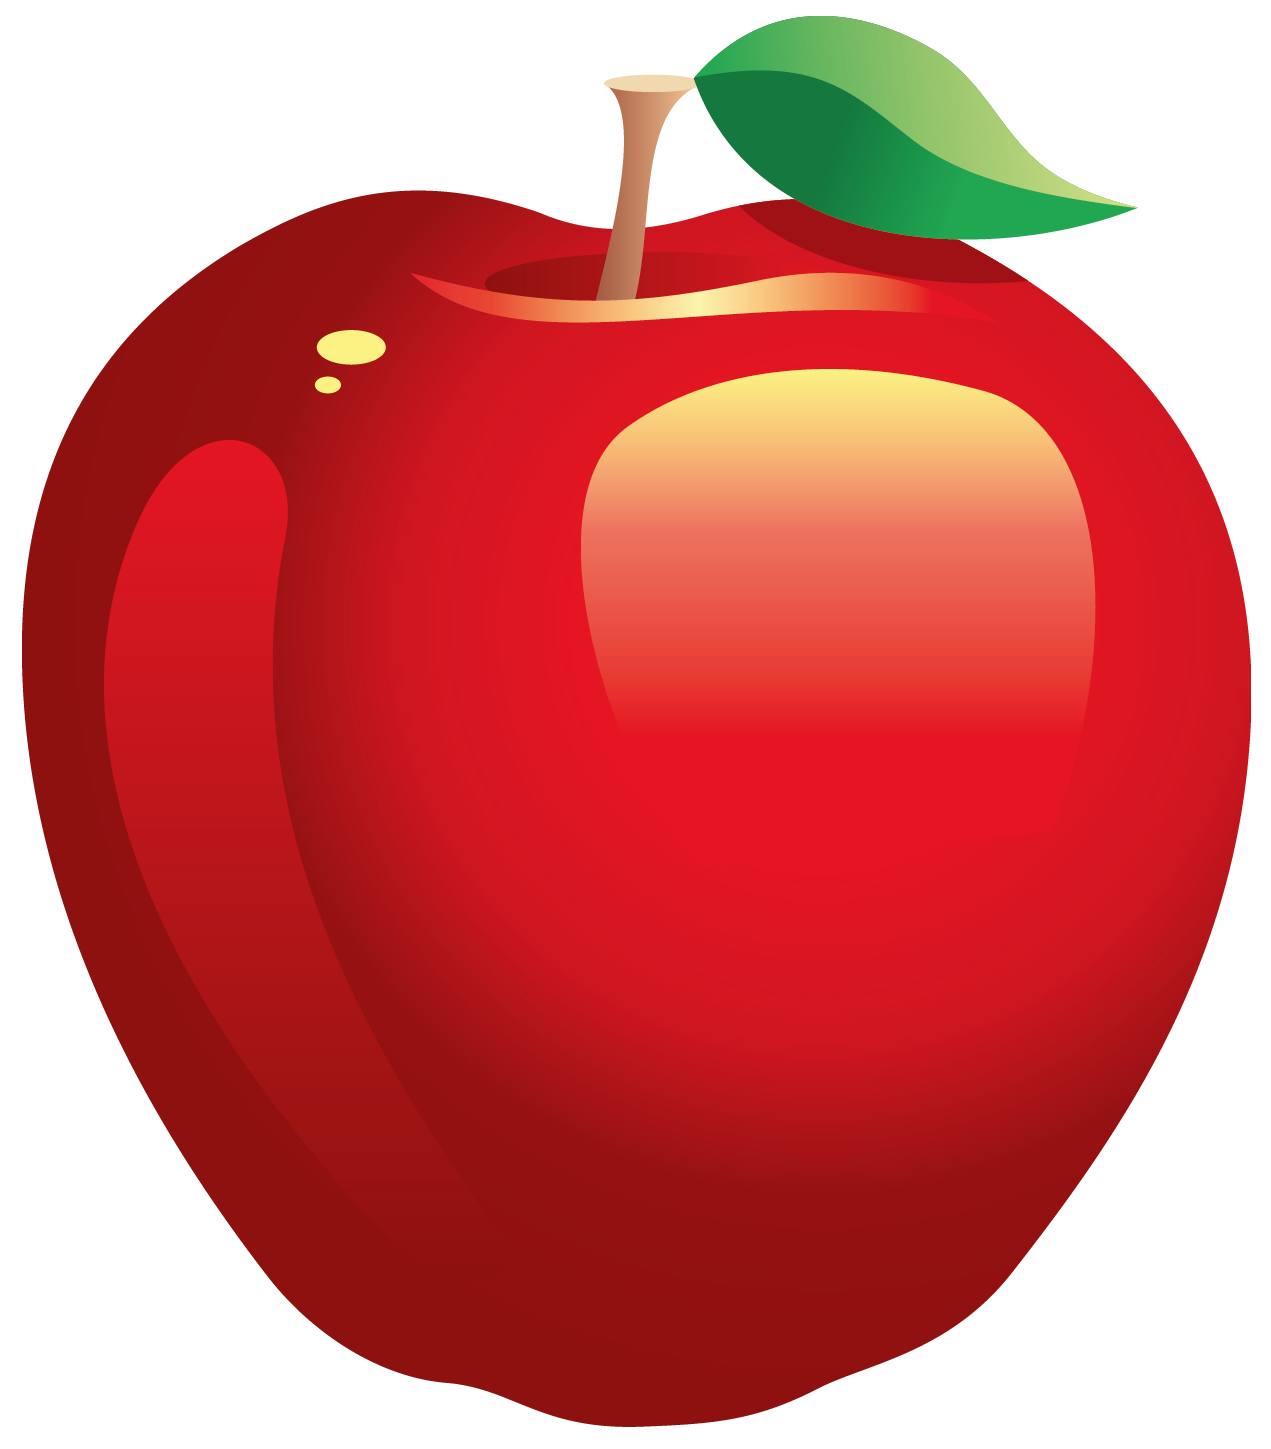 Apple Fruit Clip art.